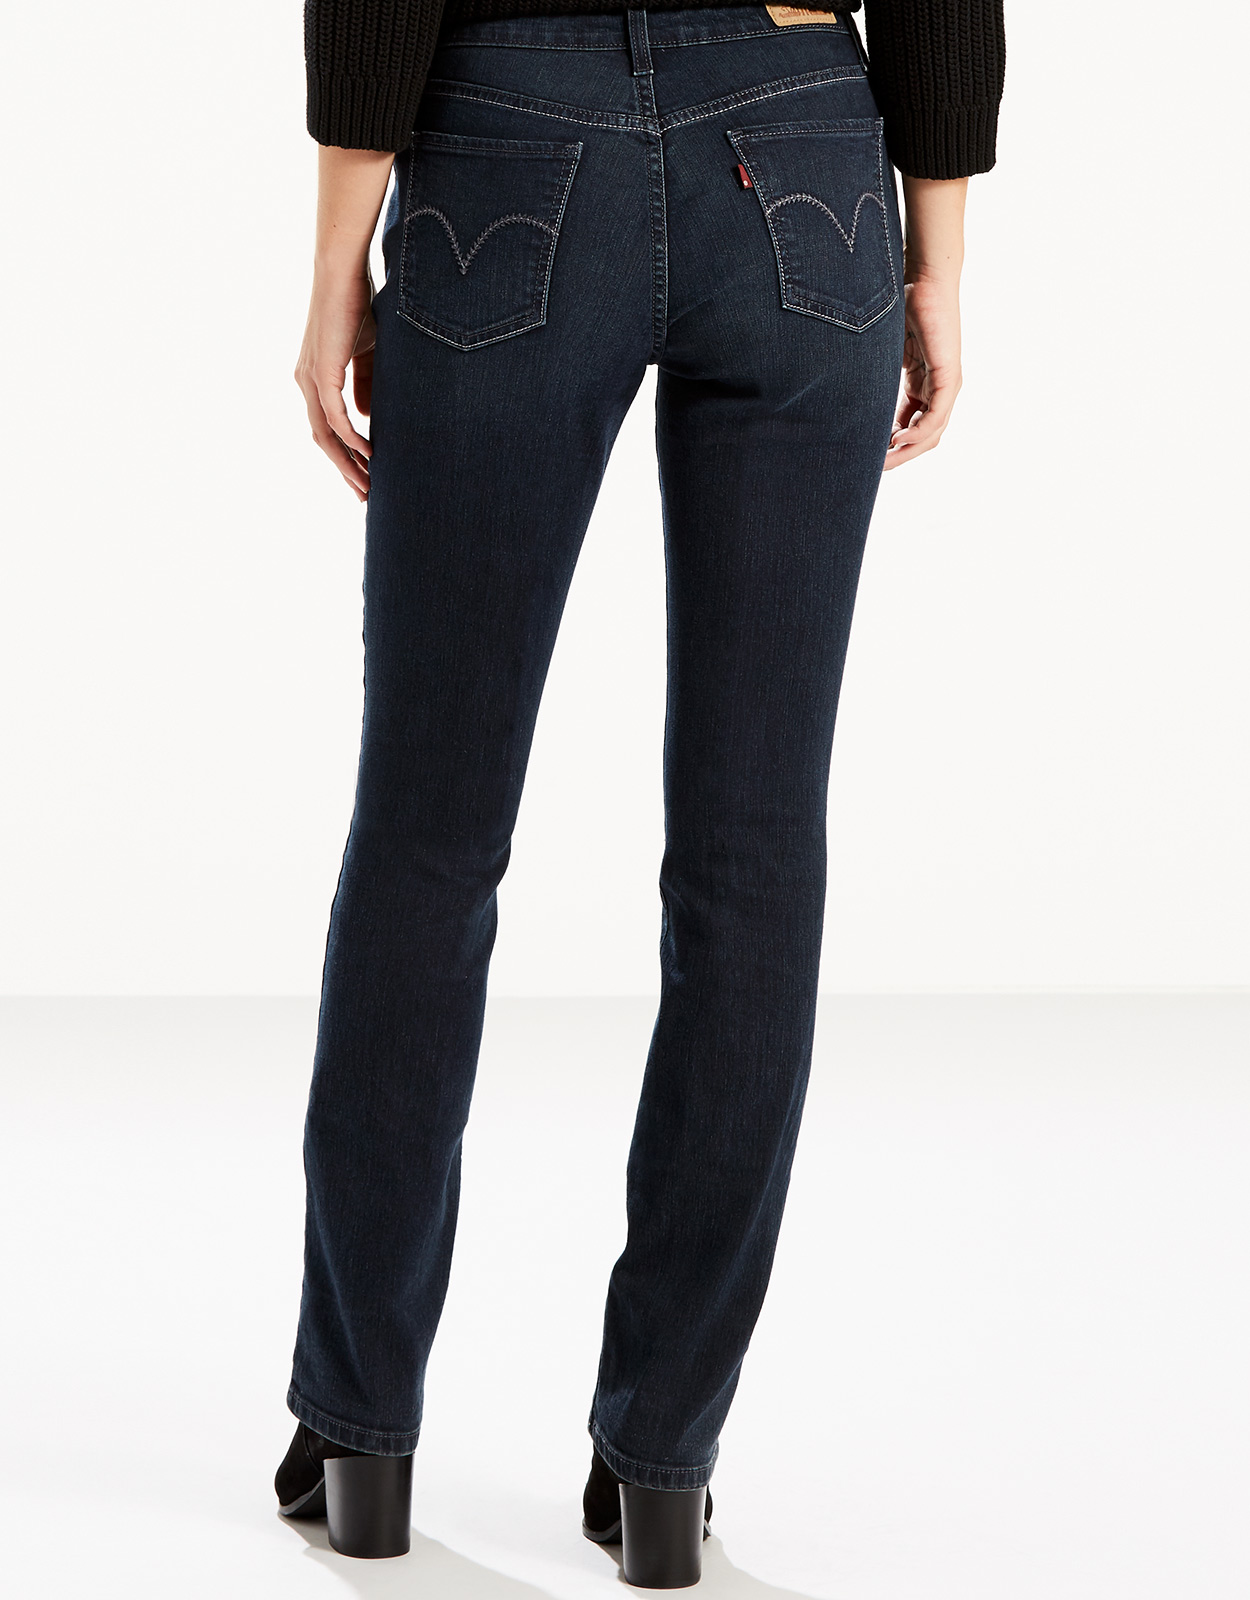 Levi's Women's 505 Straight Stretch Mid Rise Easy Fit Straight Leg Jeans - Immersion